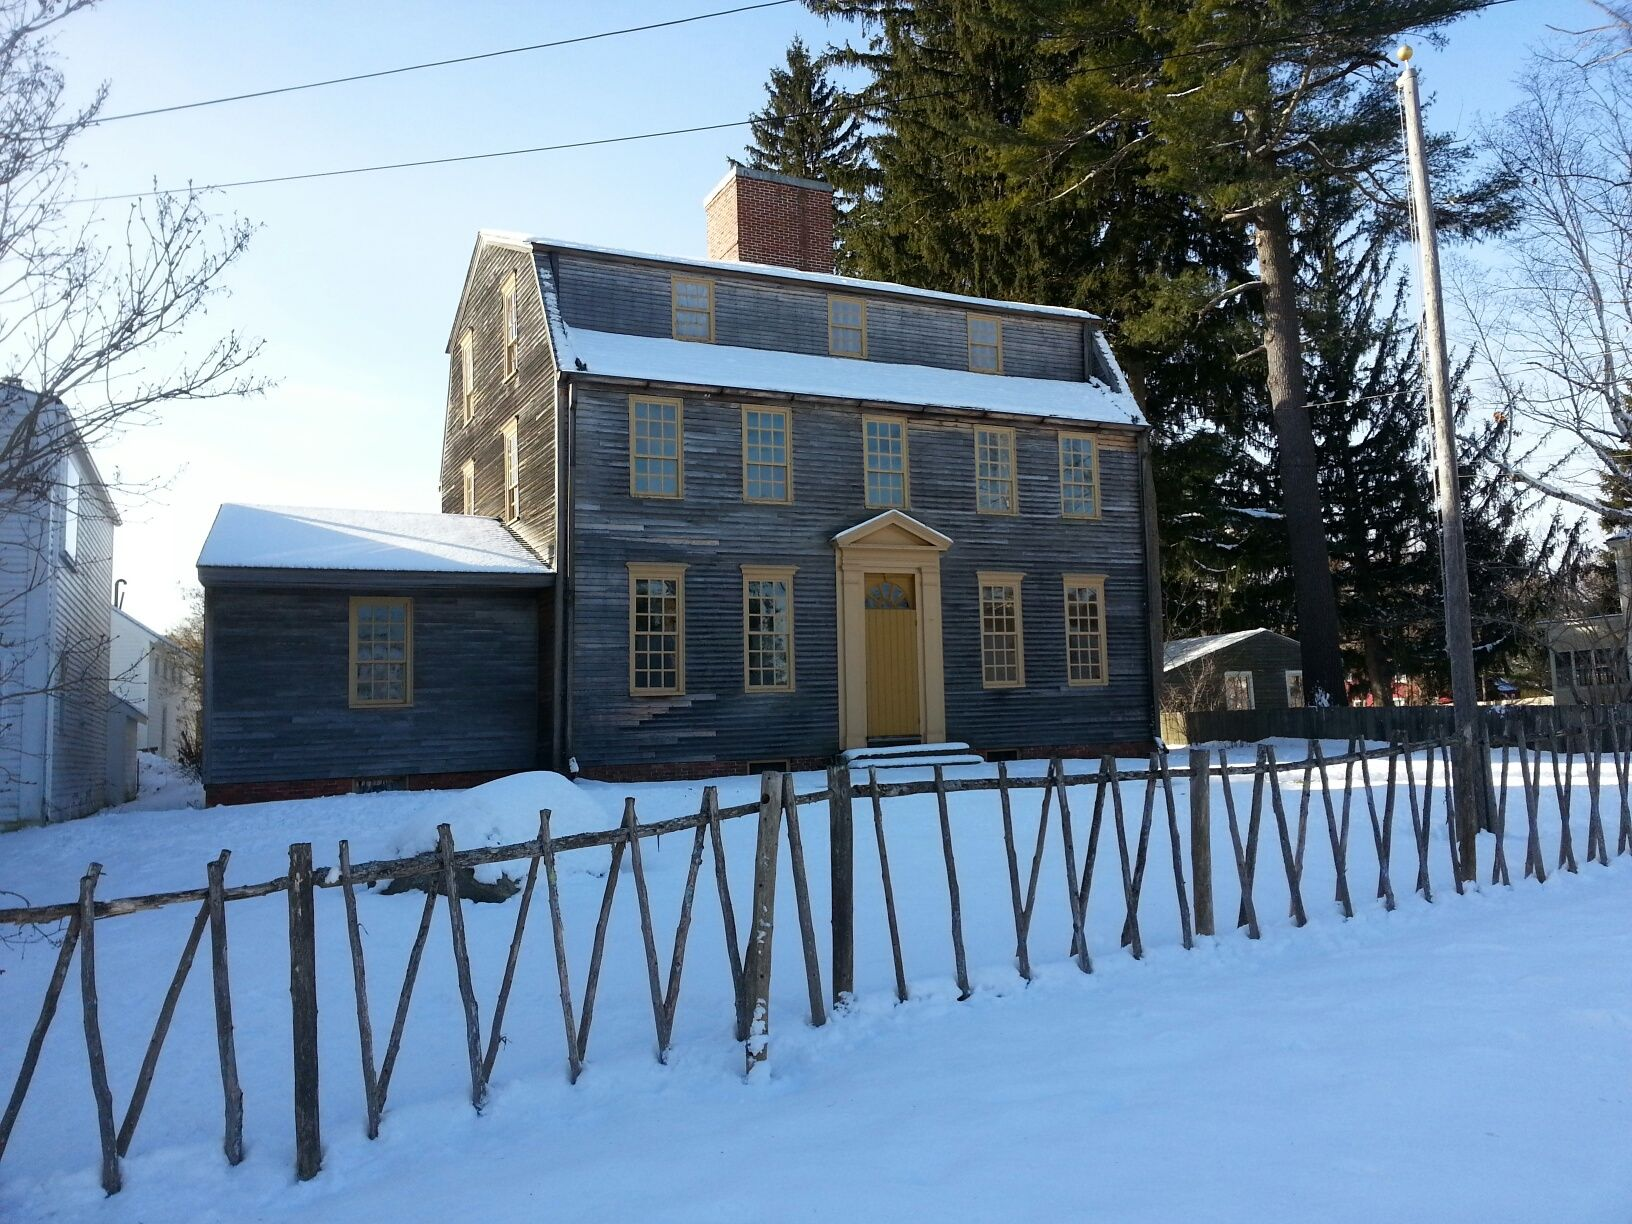 the tate house is located in stroudwater village  portland  me  built in 1755 for george tate is